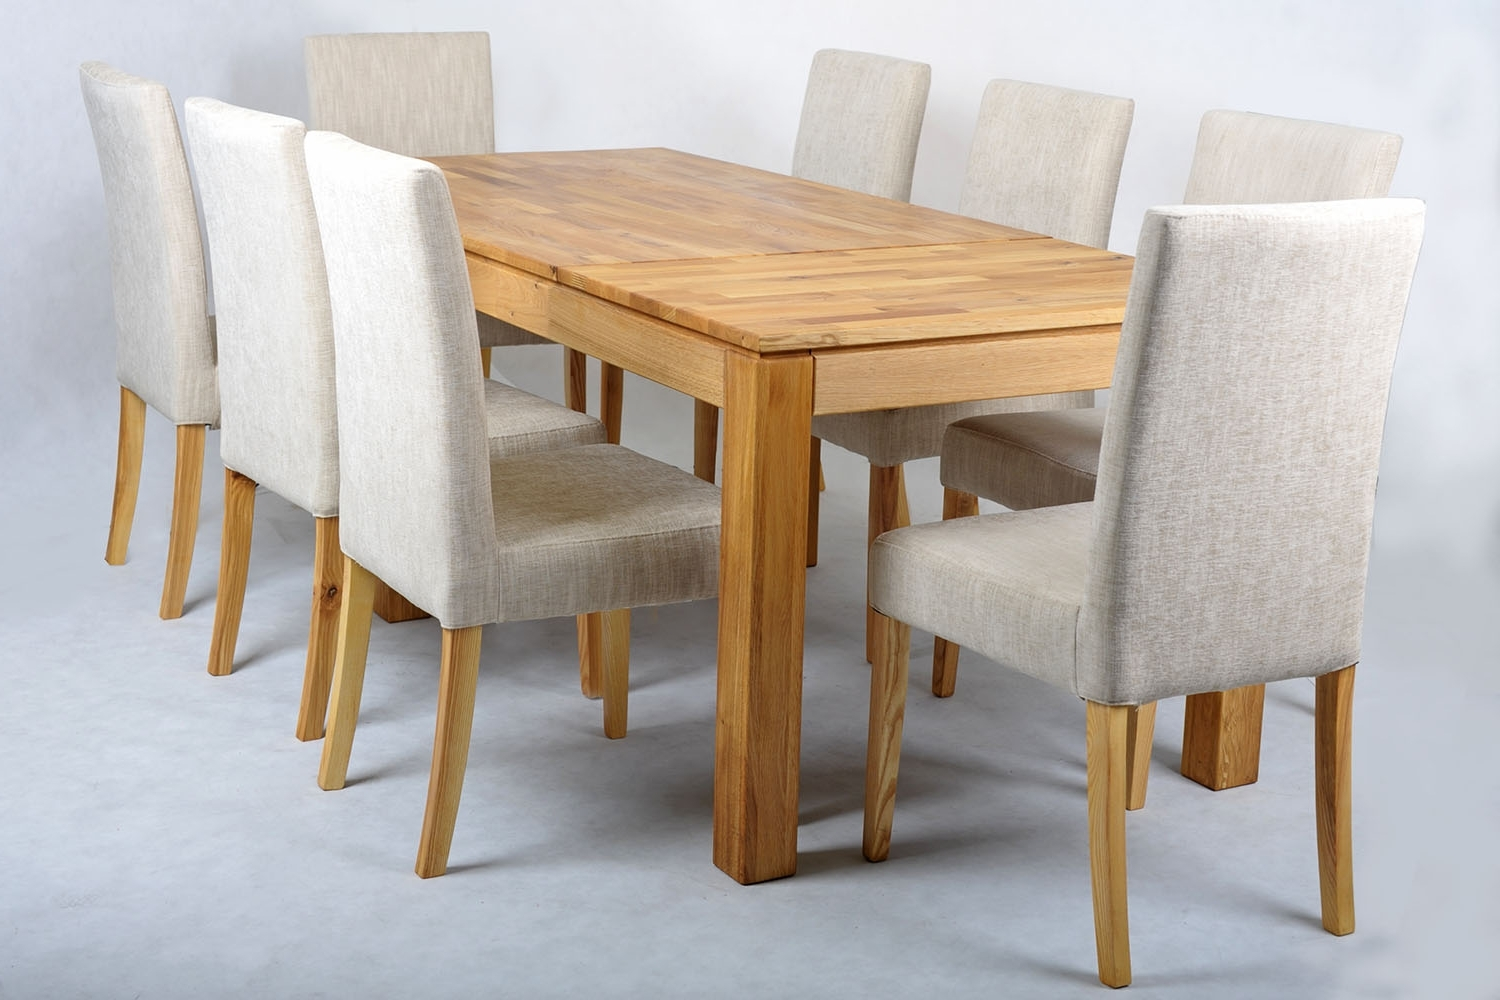 Popular Oak Dining Tables And Fabric Chairs Within Oak Extending Dining Table And Fabric Chairs Set Ivory Stainless (Gallery 6 of 25)